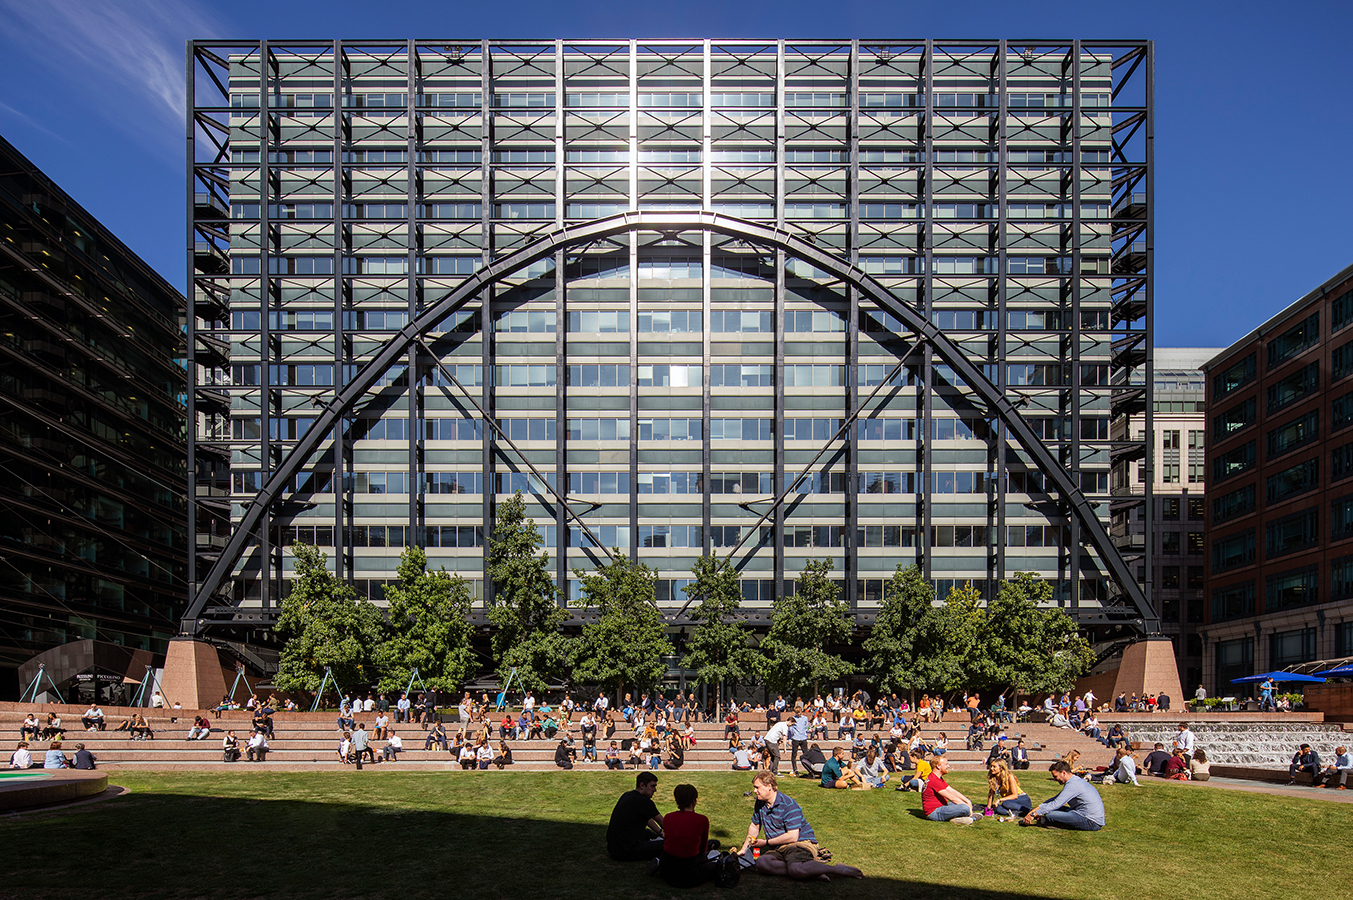 Exchange House, Broadgate. A grassy area in front of a large modern building black